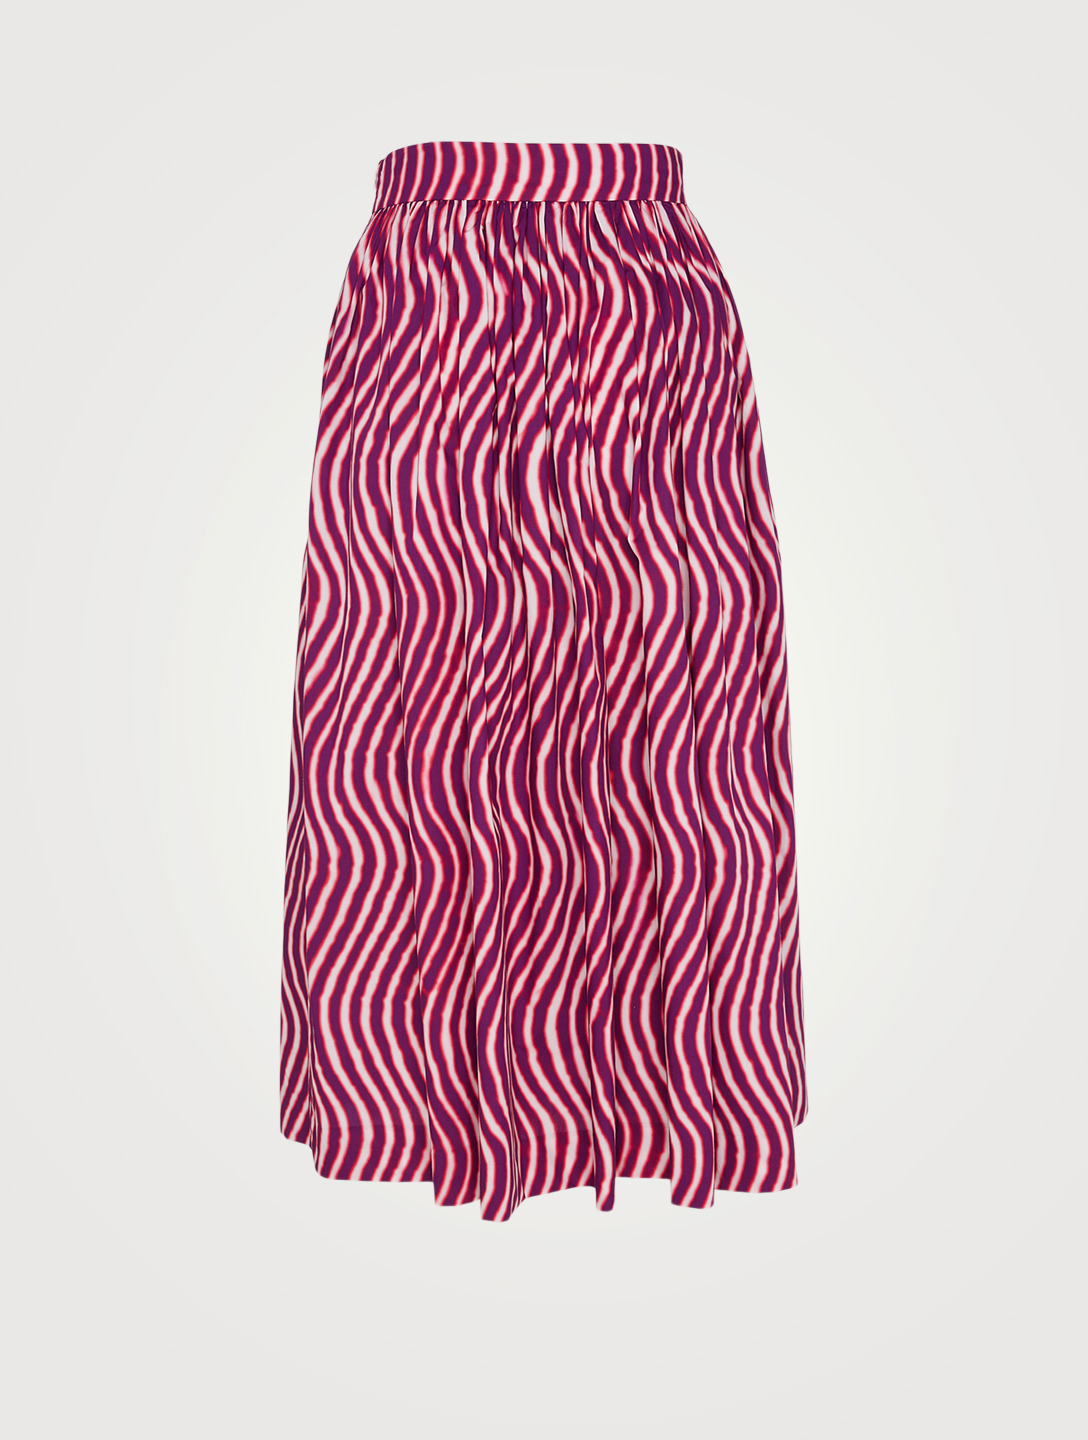 DRIES VAN NOTEN Sita Cotton Midi Skirt In Wave Print Women's Pink